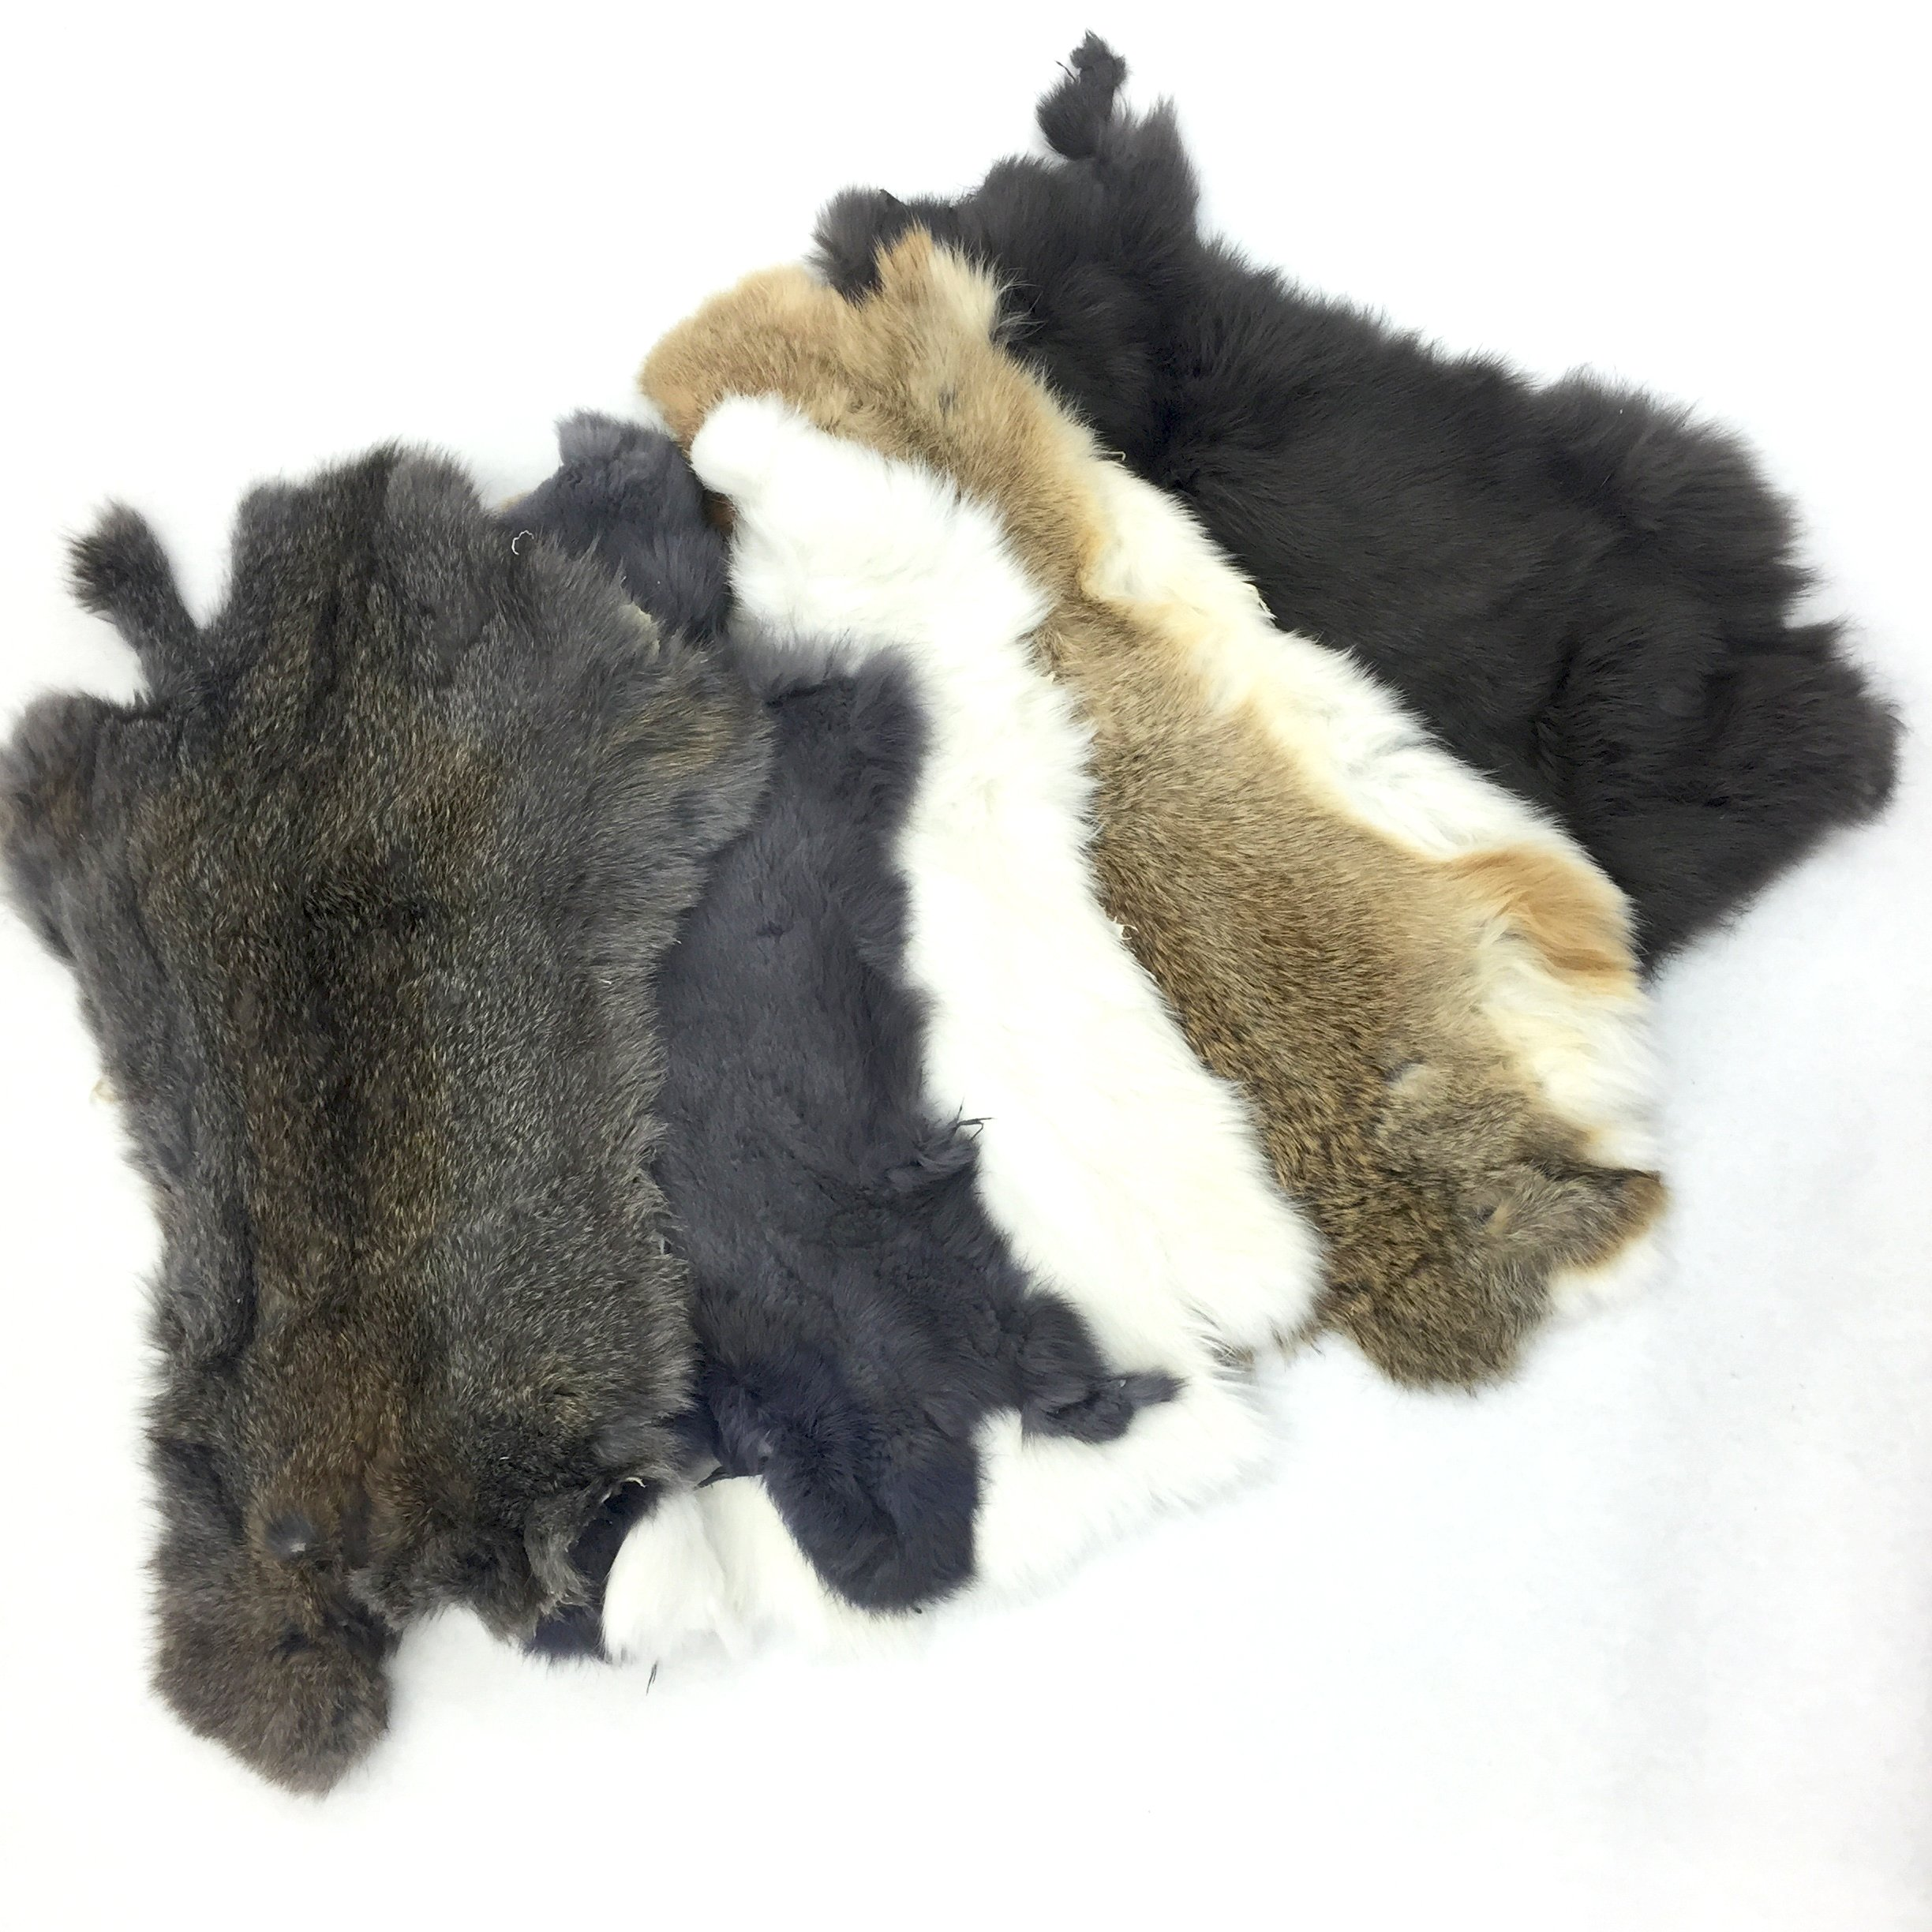 Assorted Bulk Craft Grade Rabbit Pelts (5 Pack) by Cinema Leather (Image #1)